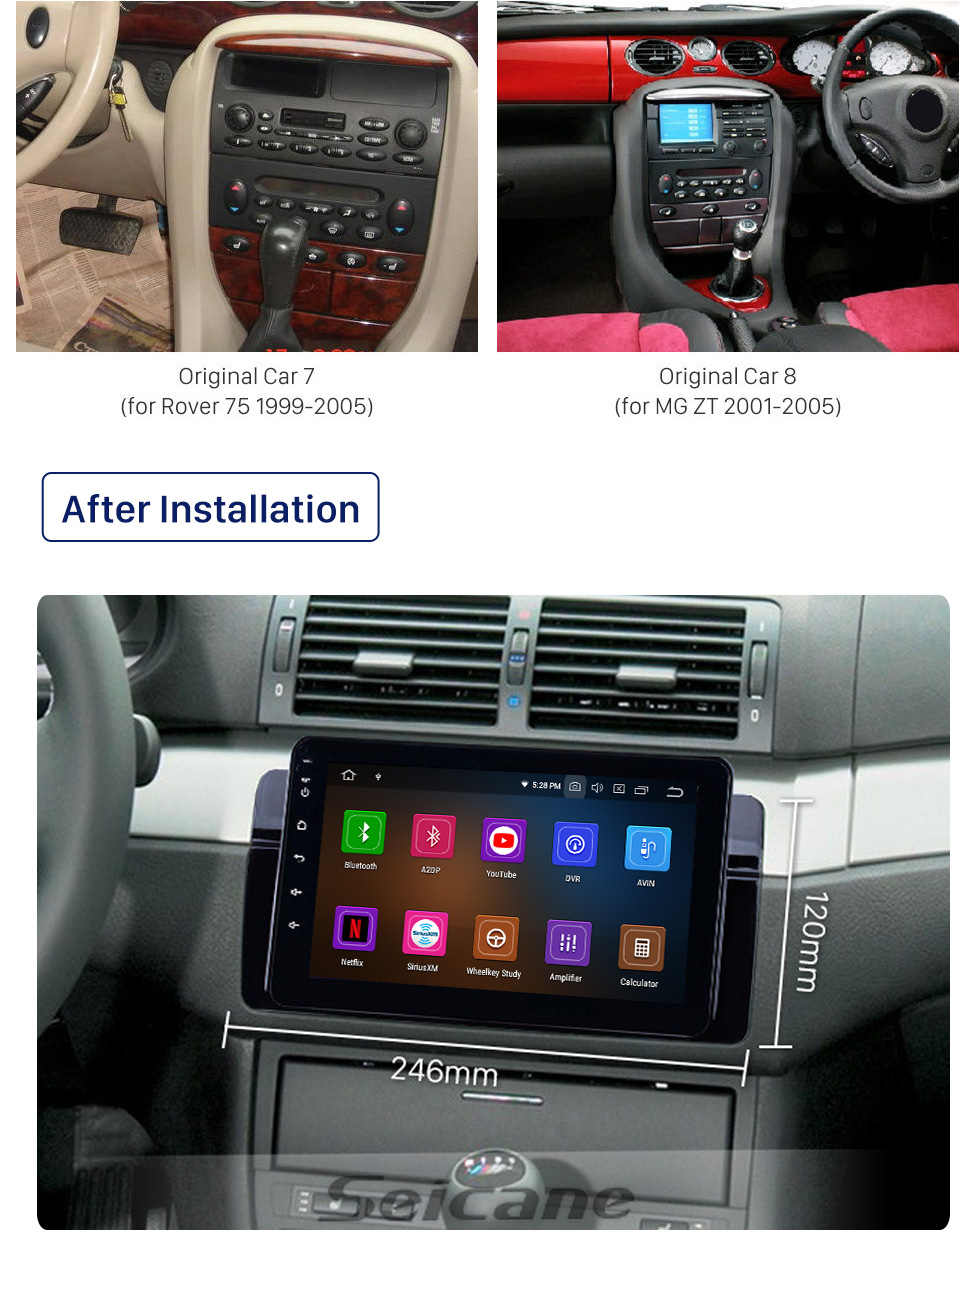 Seicane 8 inch Android 10.0 GPS Navigation Radio for 1998-2006 BMW 3 Series E46 M3 2001-2004 MG ZT 1999-2004 Rover 75 with HD Touchscreen Carplay Bluetooth support SWC DVR